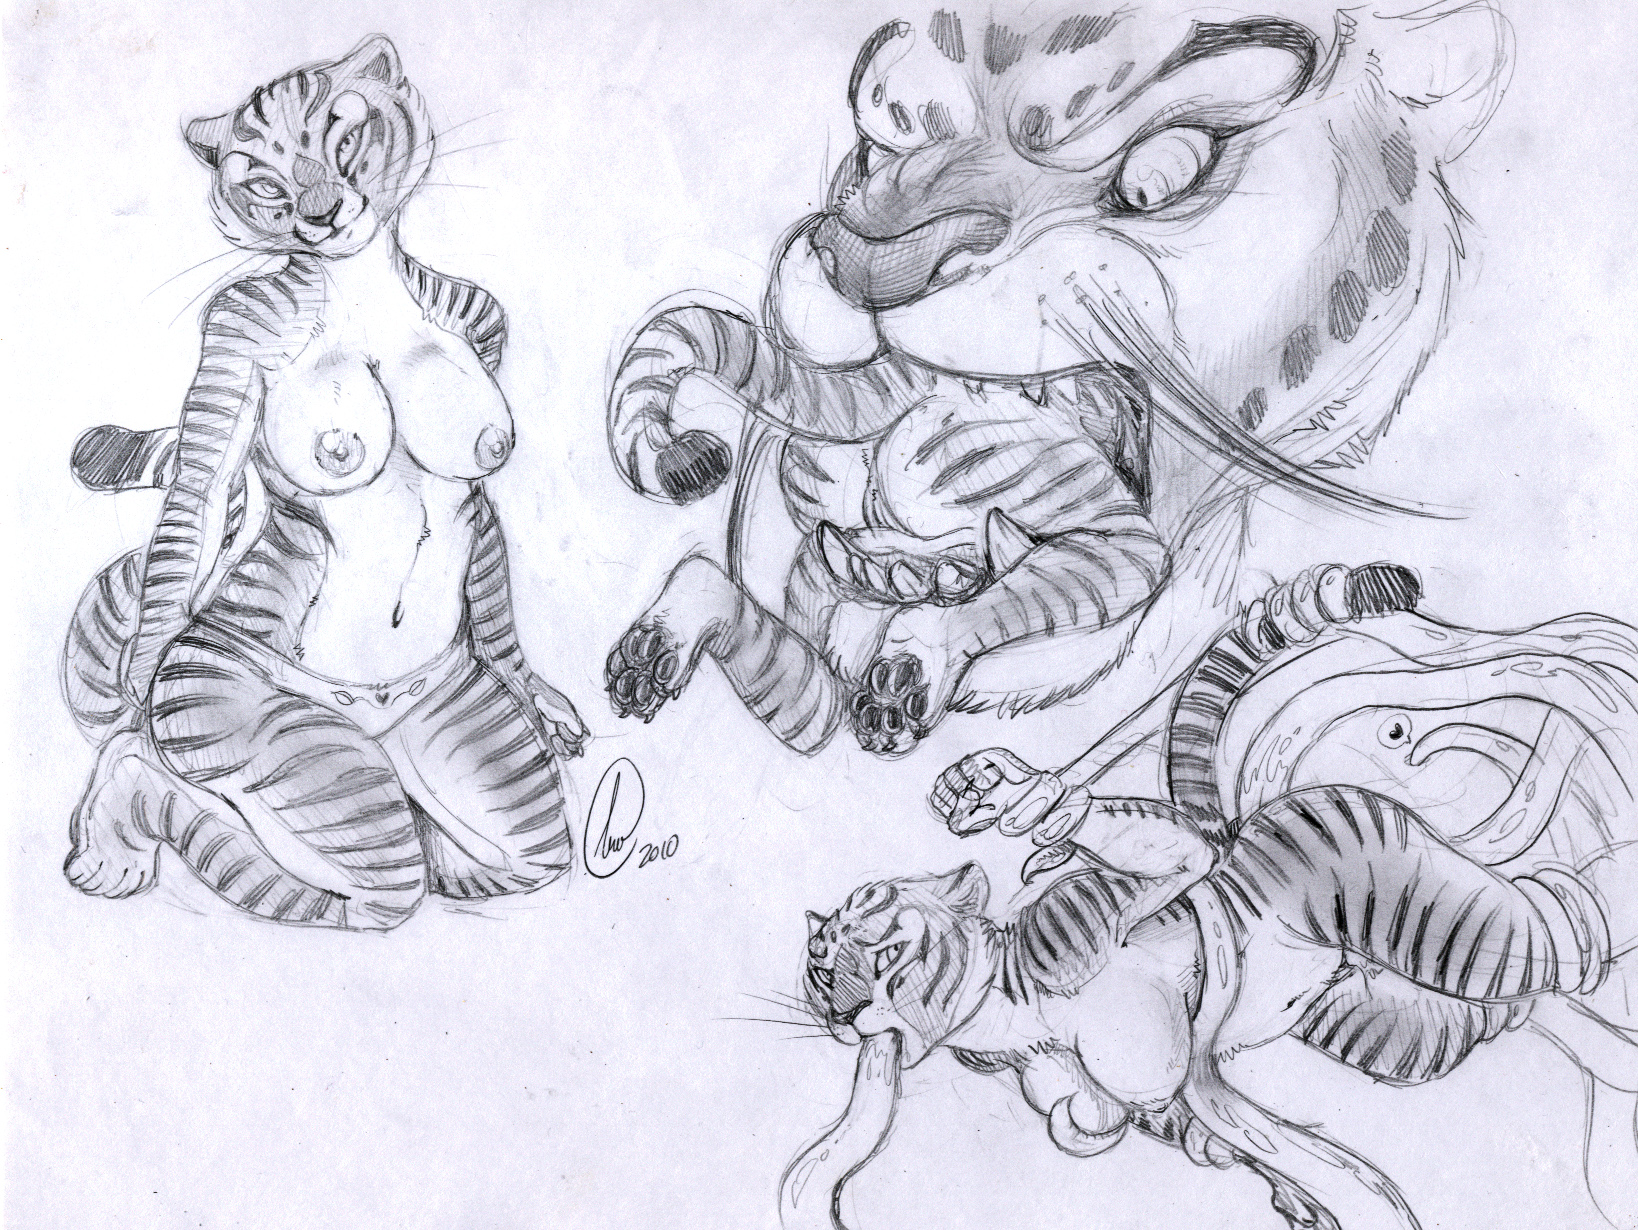 e621 anthro body_in_mouth breasts clothed clothing dreamworks duo feline female gravewalker greyscale head_first hi_res kung_fu_panda leopard mammal master_tigress monochrome multiple_images nude panties pencil_(artwork) pussy sketch_page snow_leopard soft_vore solo tai_lung tentacles tiger topless traditional_media_(artwork) underwear vore